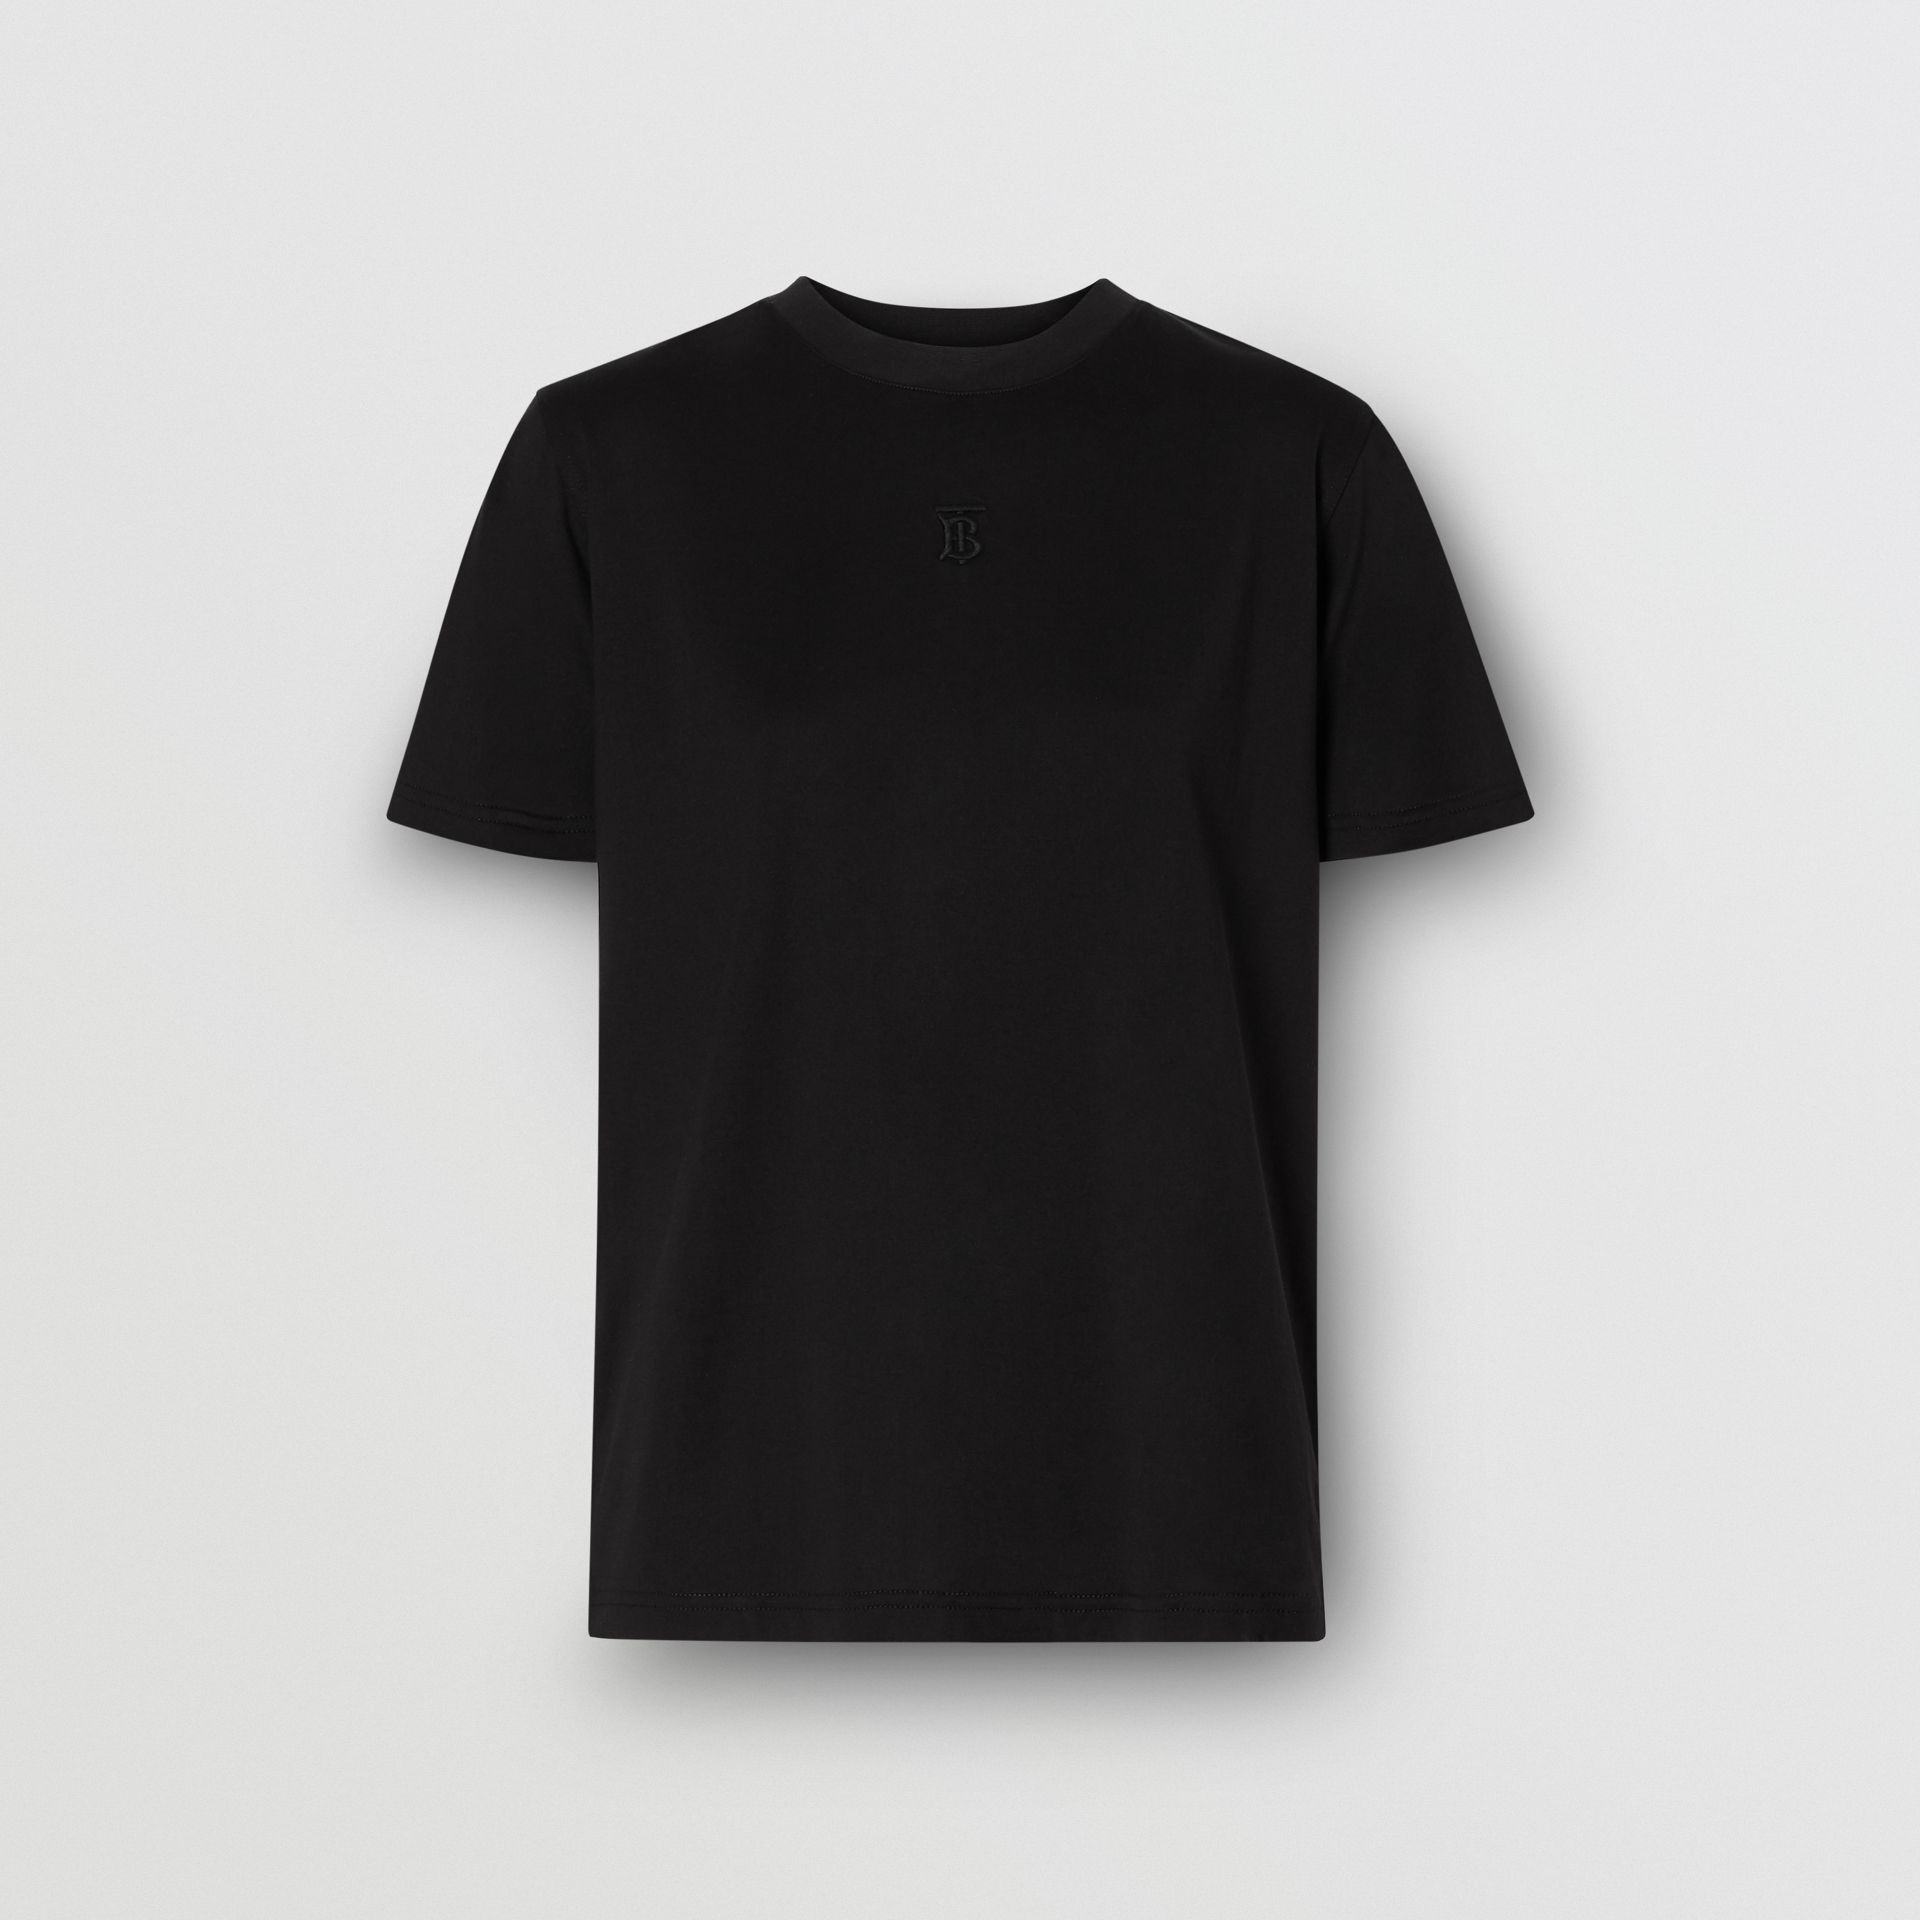 Monogram Motif Cotton T-shirt in Black - Women | Burberry - gallery image 3